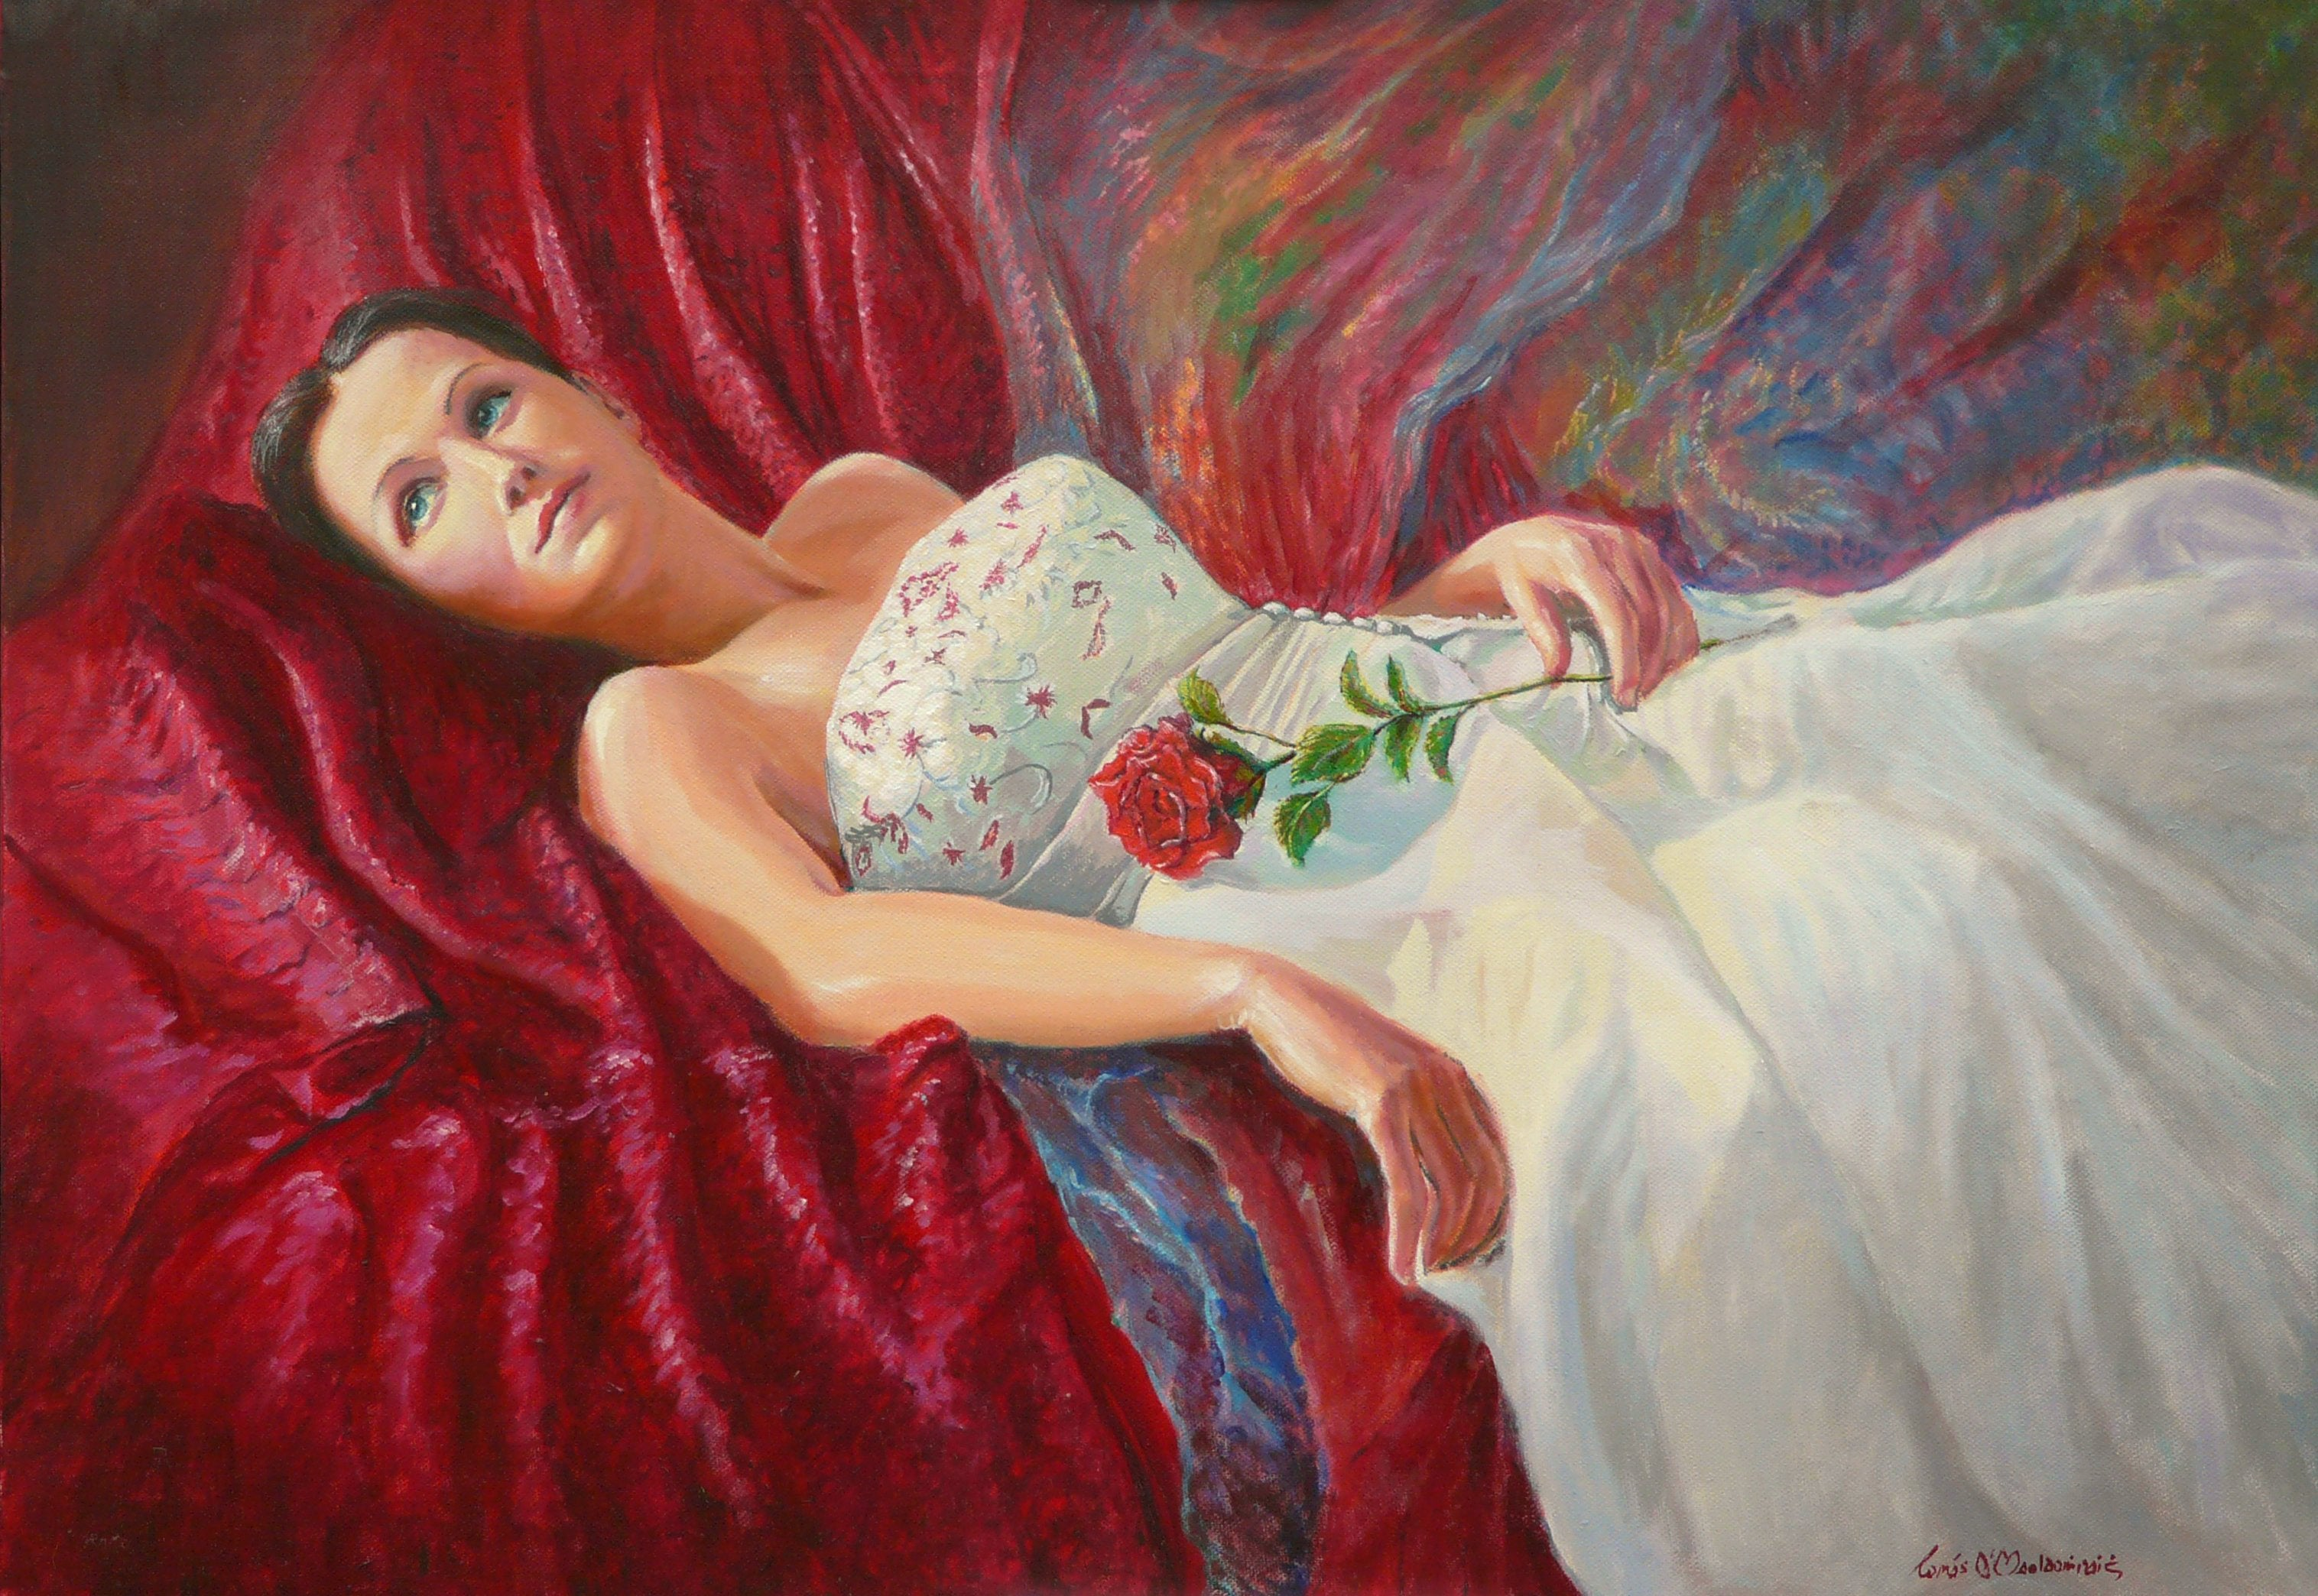 Crimson Rose oils 70 x 50 cm